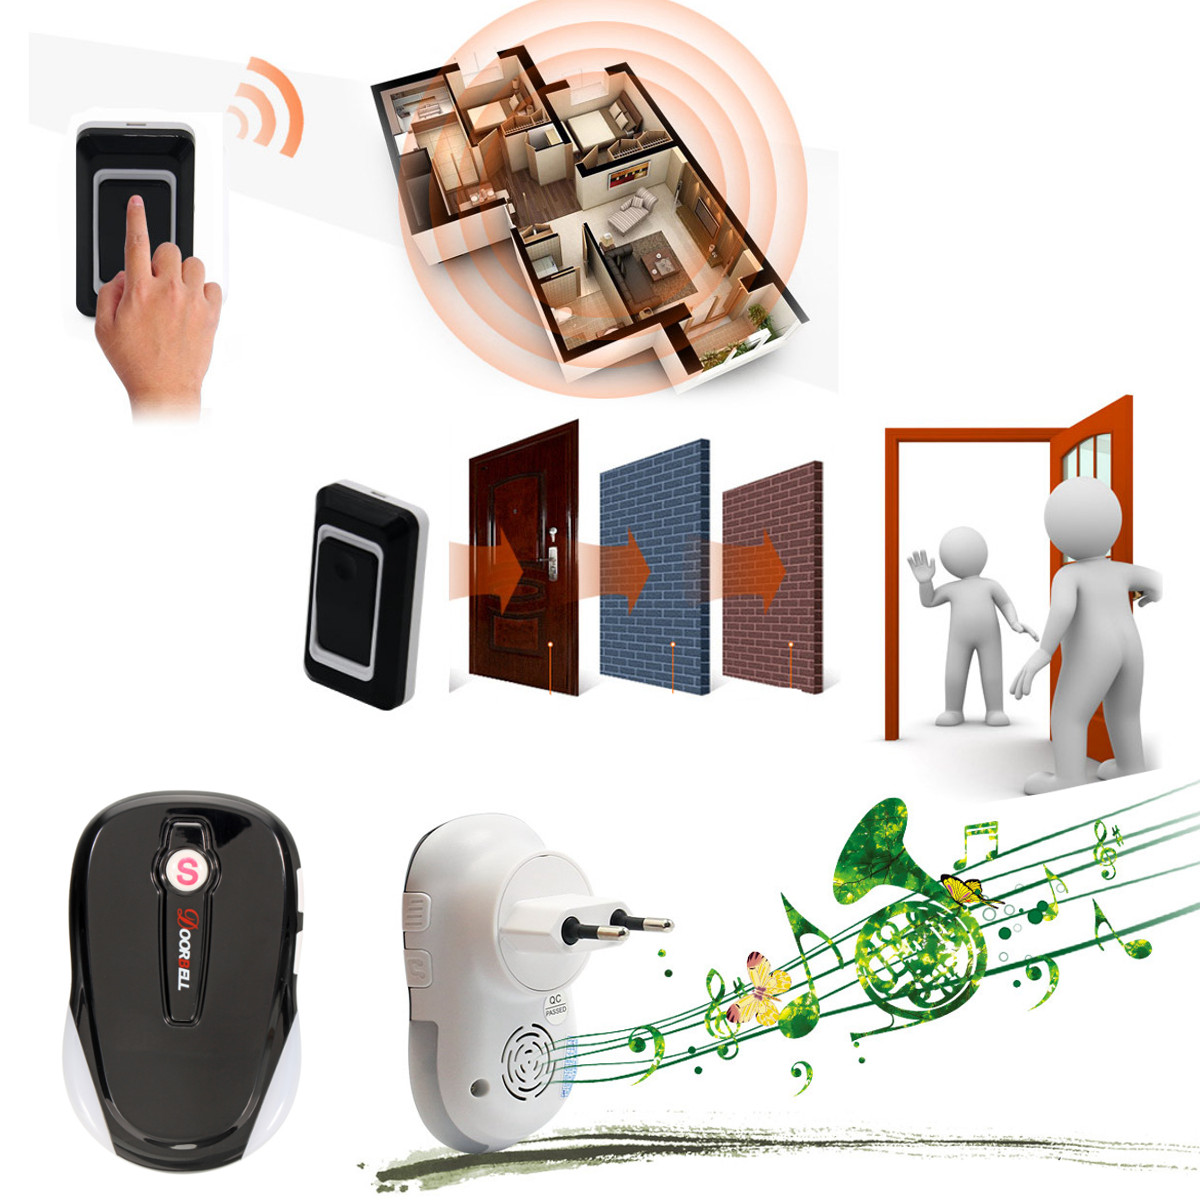 300M Smart Wireless Digital Doorbell Phone Home Security 2 Receiver 36 Music Ring Tone Door Bell